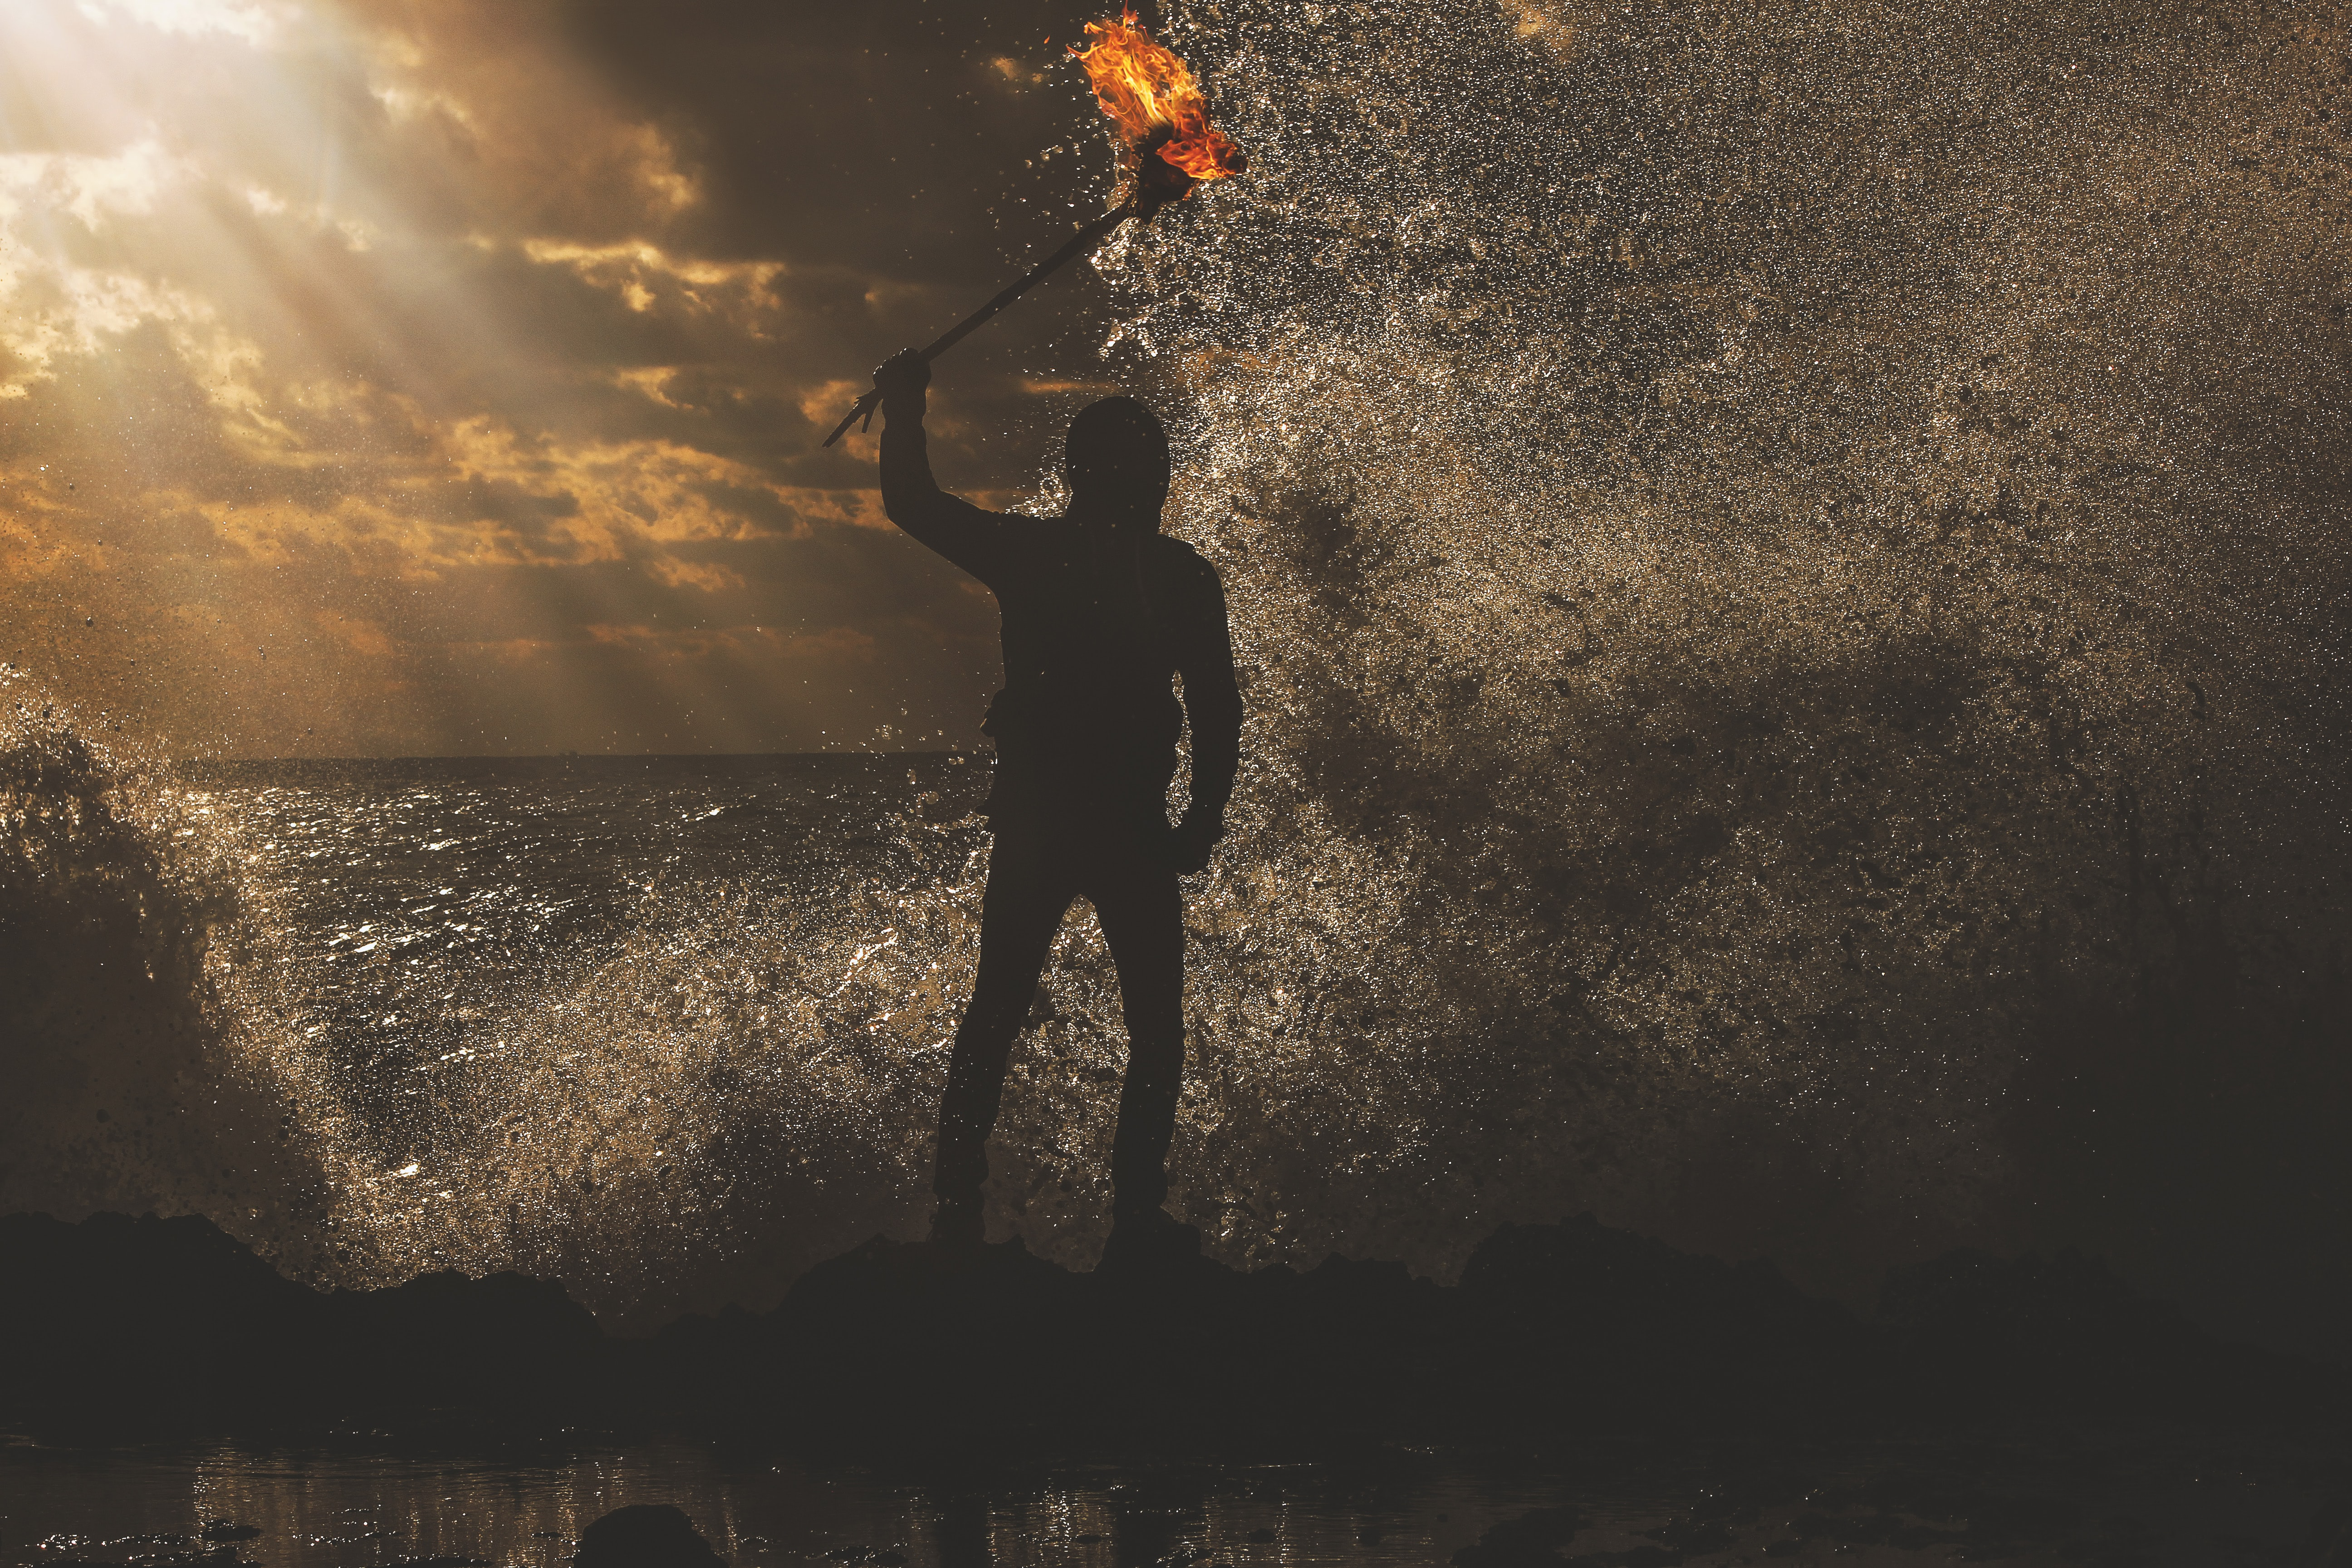 A man standing in the water during sunset at dusk, while holding a torch.